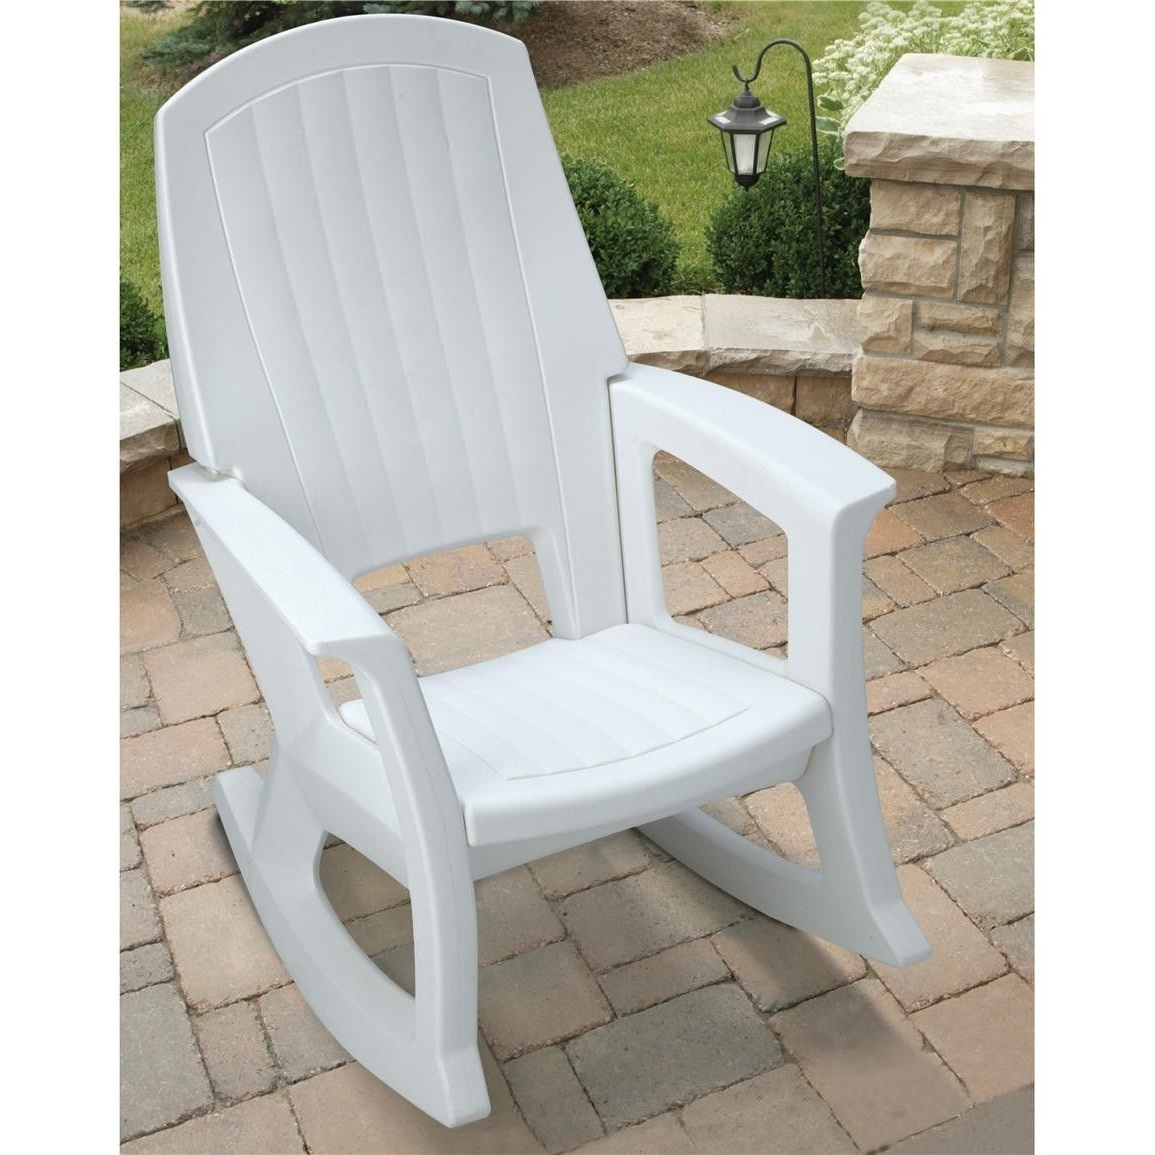 Famous Small Patio Rocking Chairs Within Semco Plastics White Resin Outdoor Patio Rocking Chair Semw : Rural (View 4 of 20)